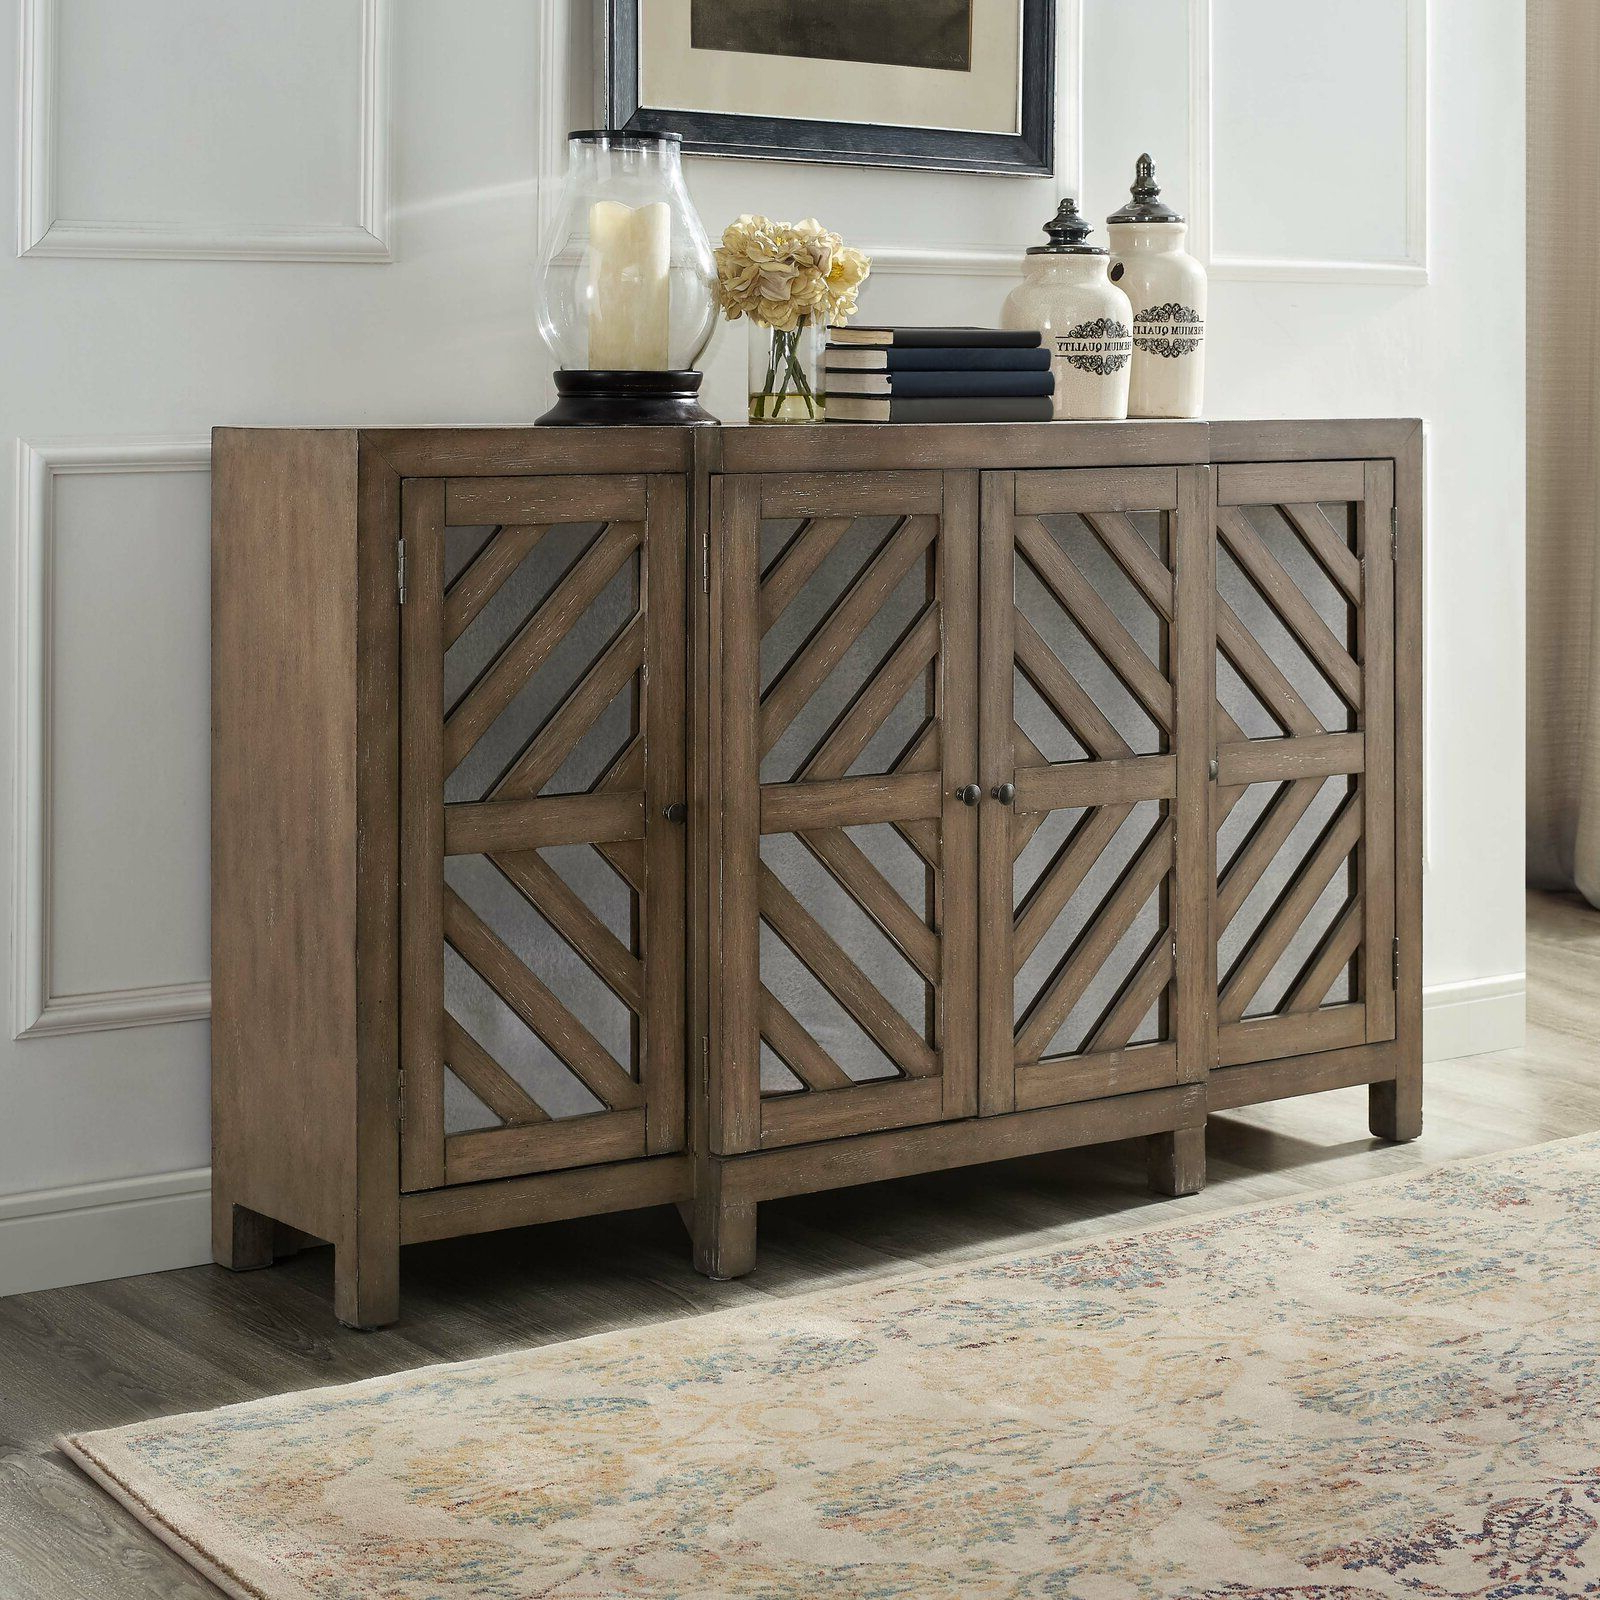 Lowrey Credenza In 2019 | New House 2019 | Credenza For Lowrey Credenzas (View 9 of 20)